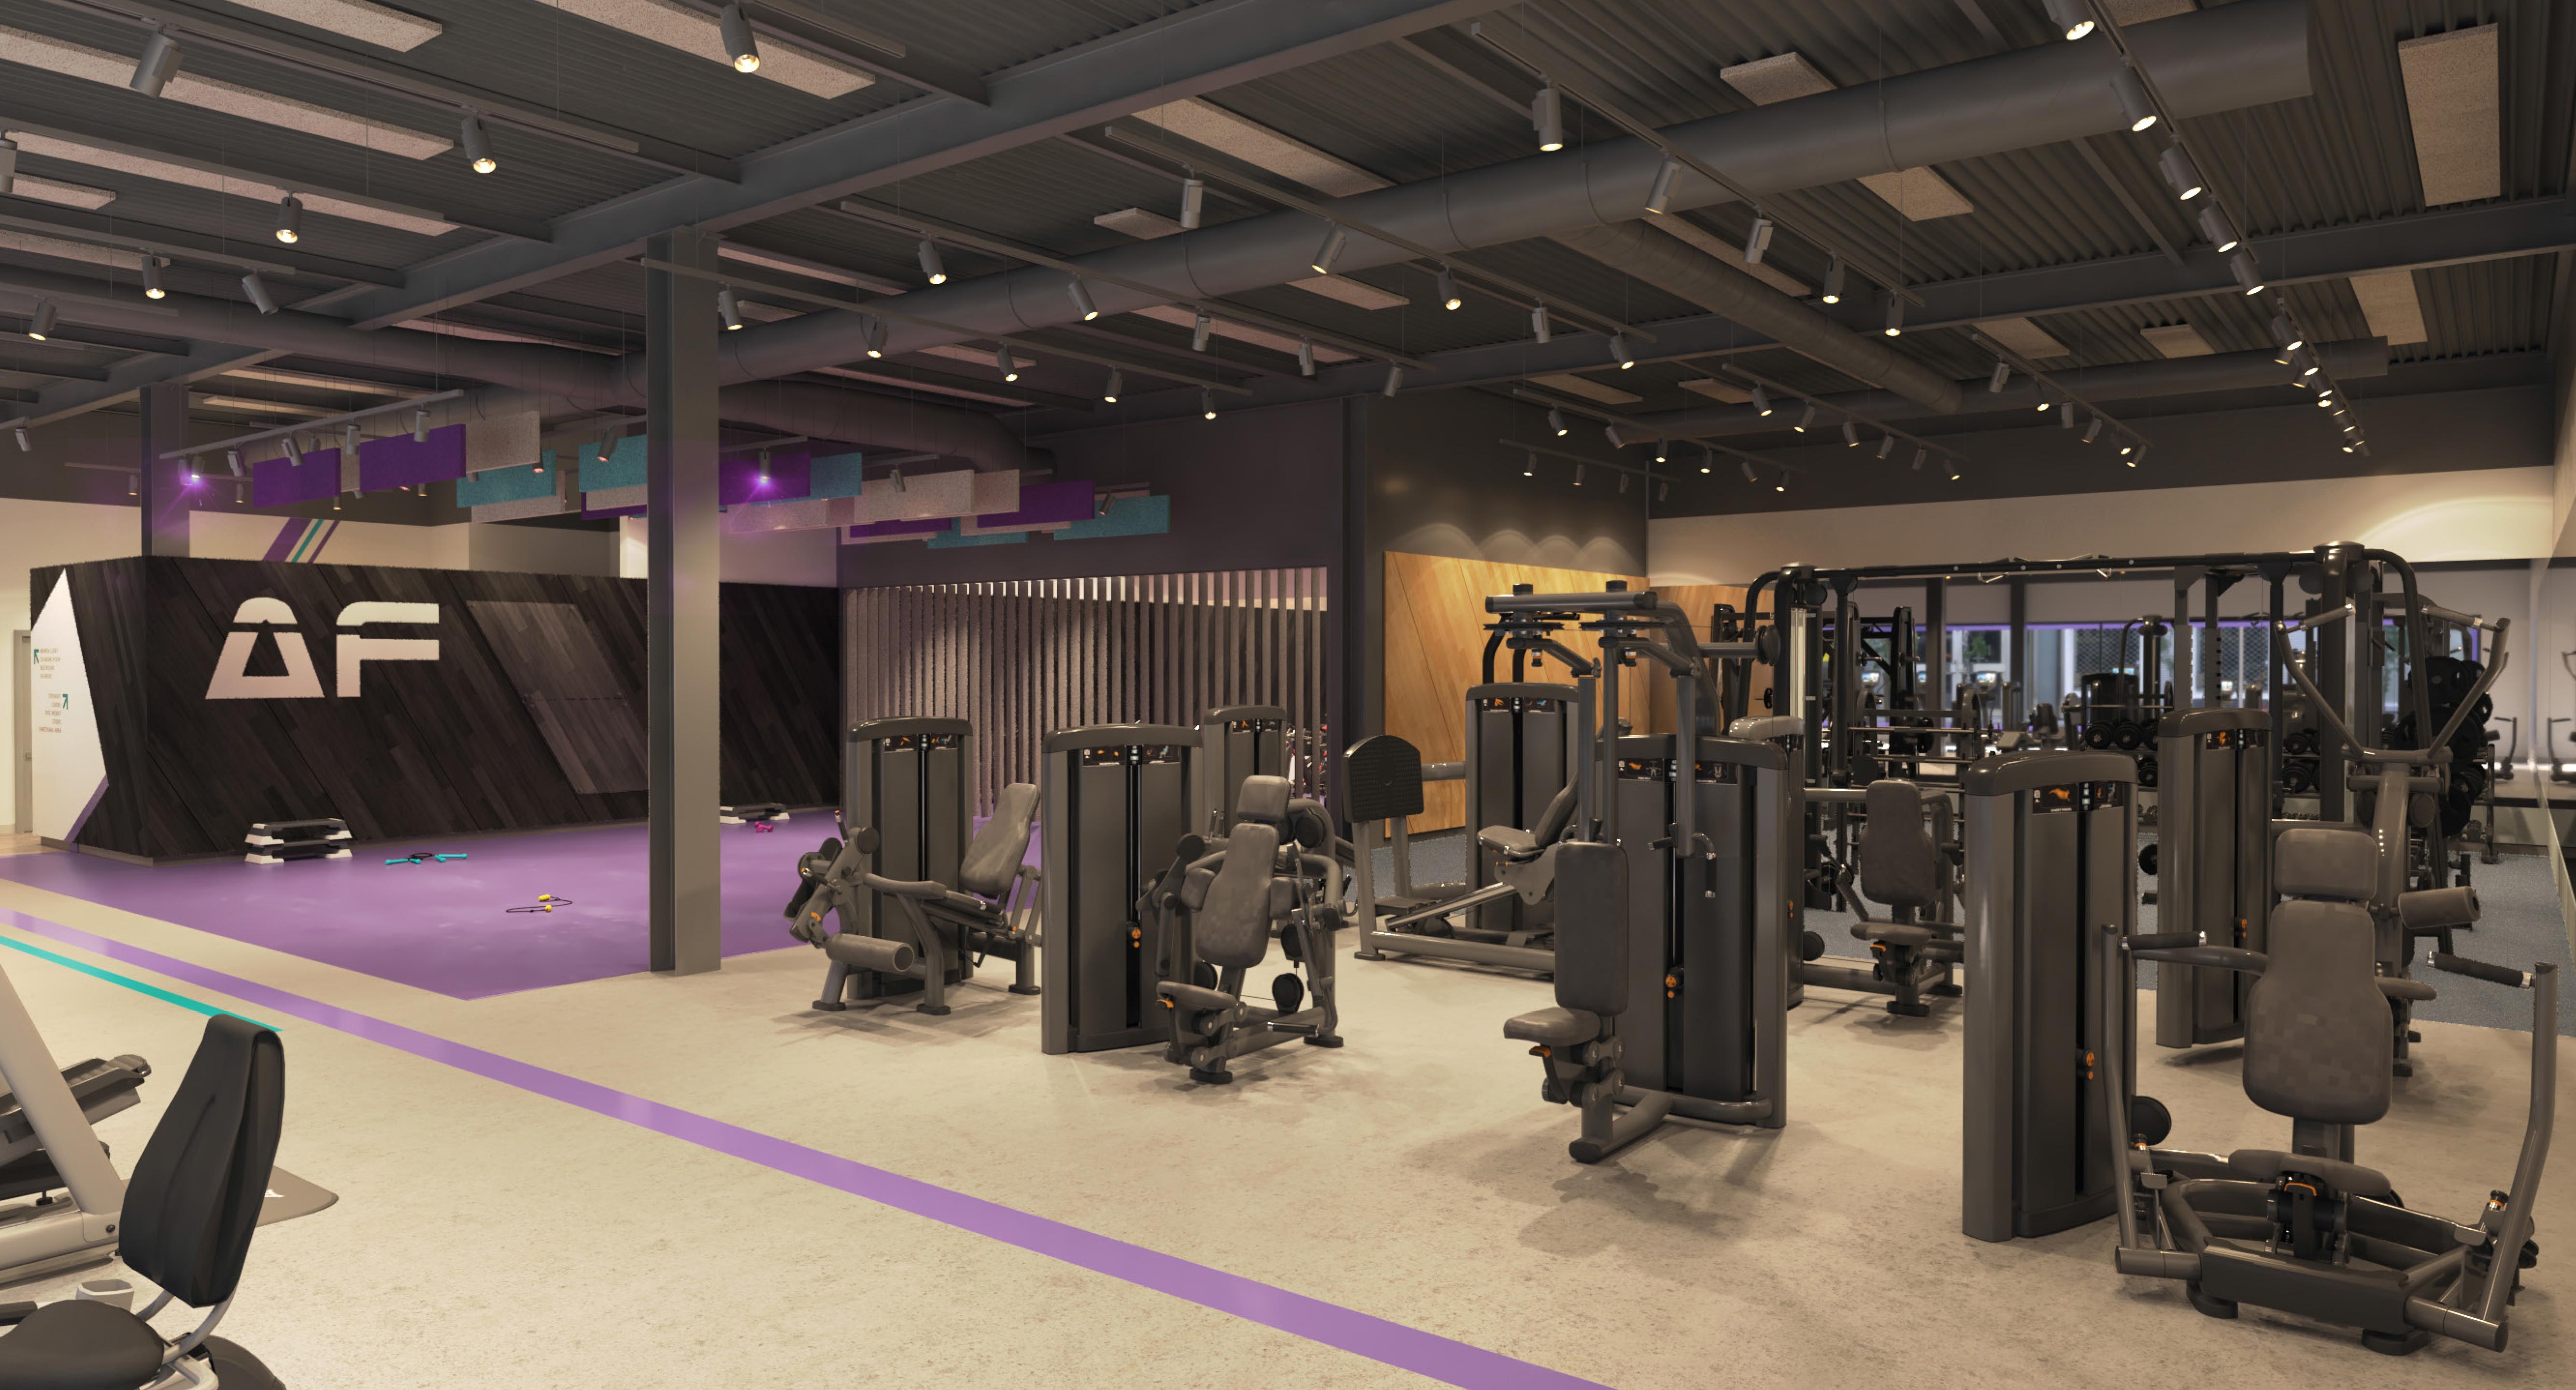 Anytime Fitness India